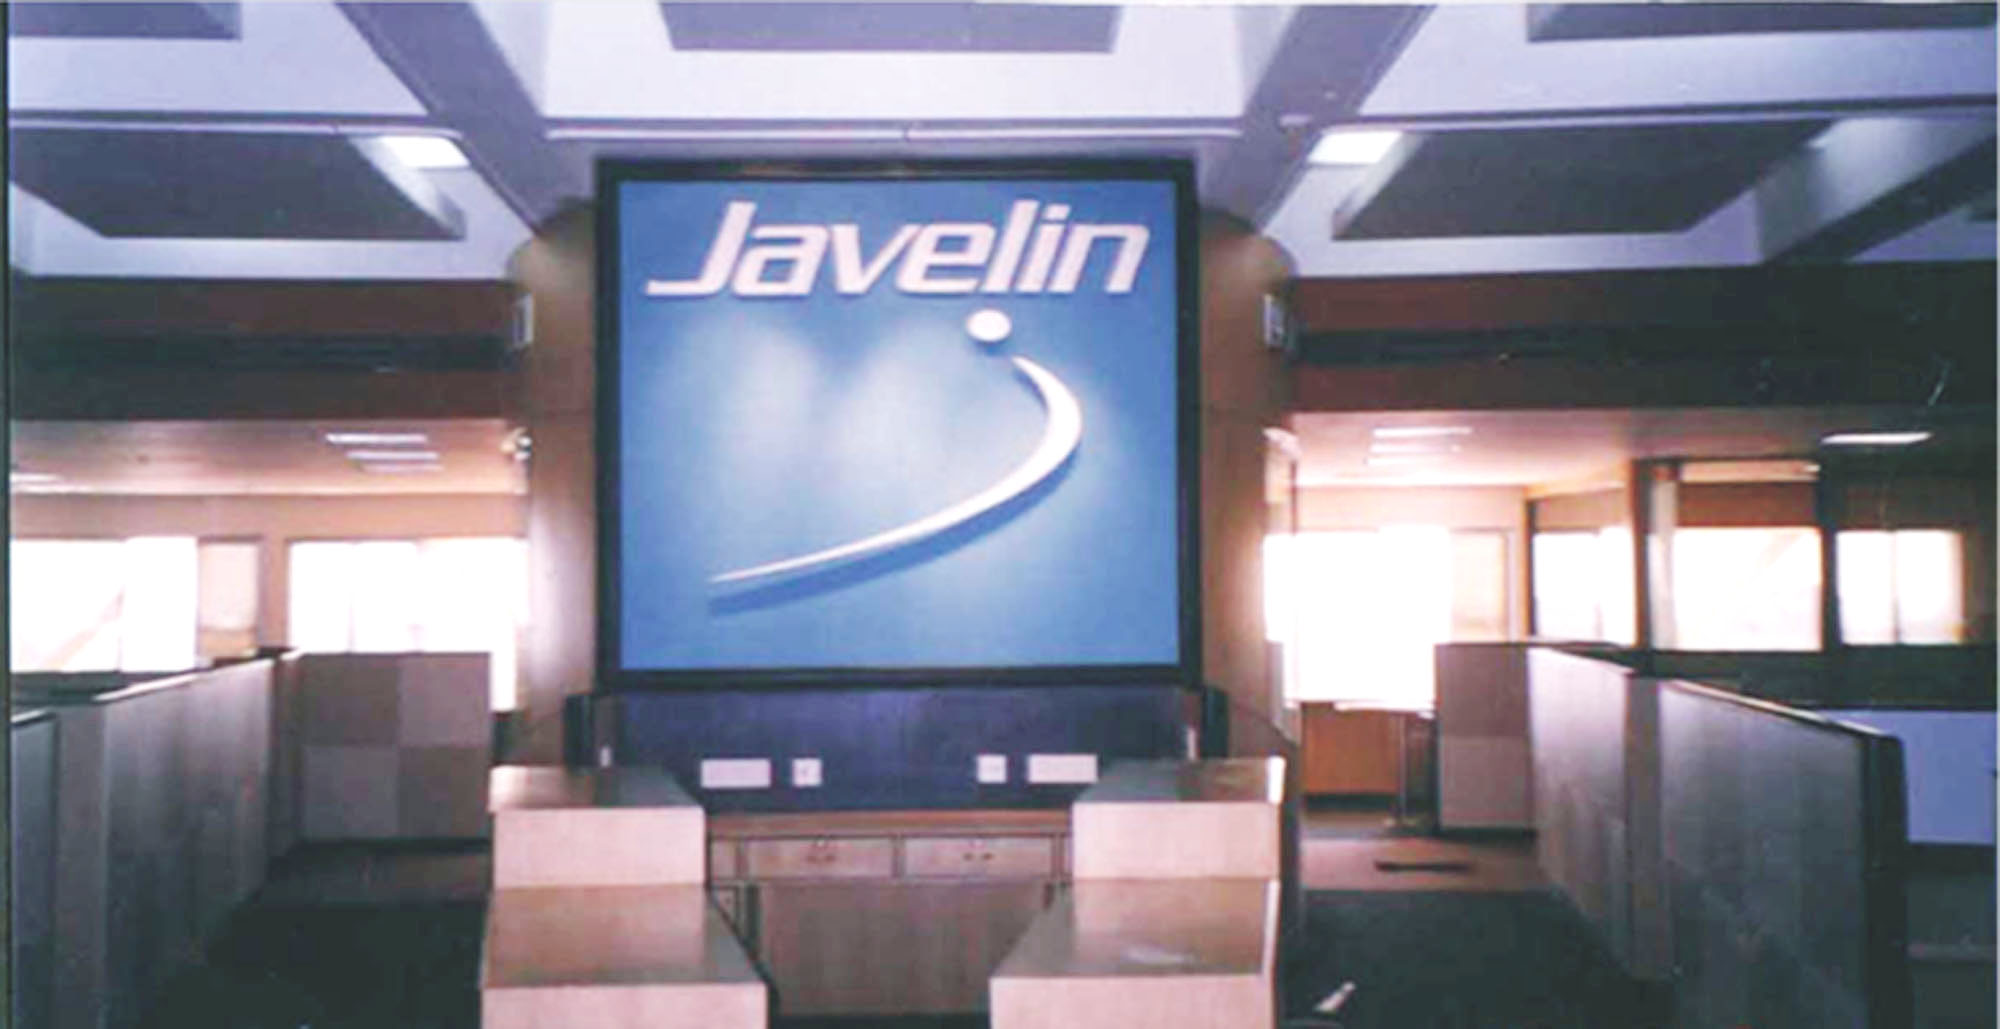 Javelin Office